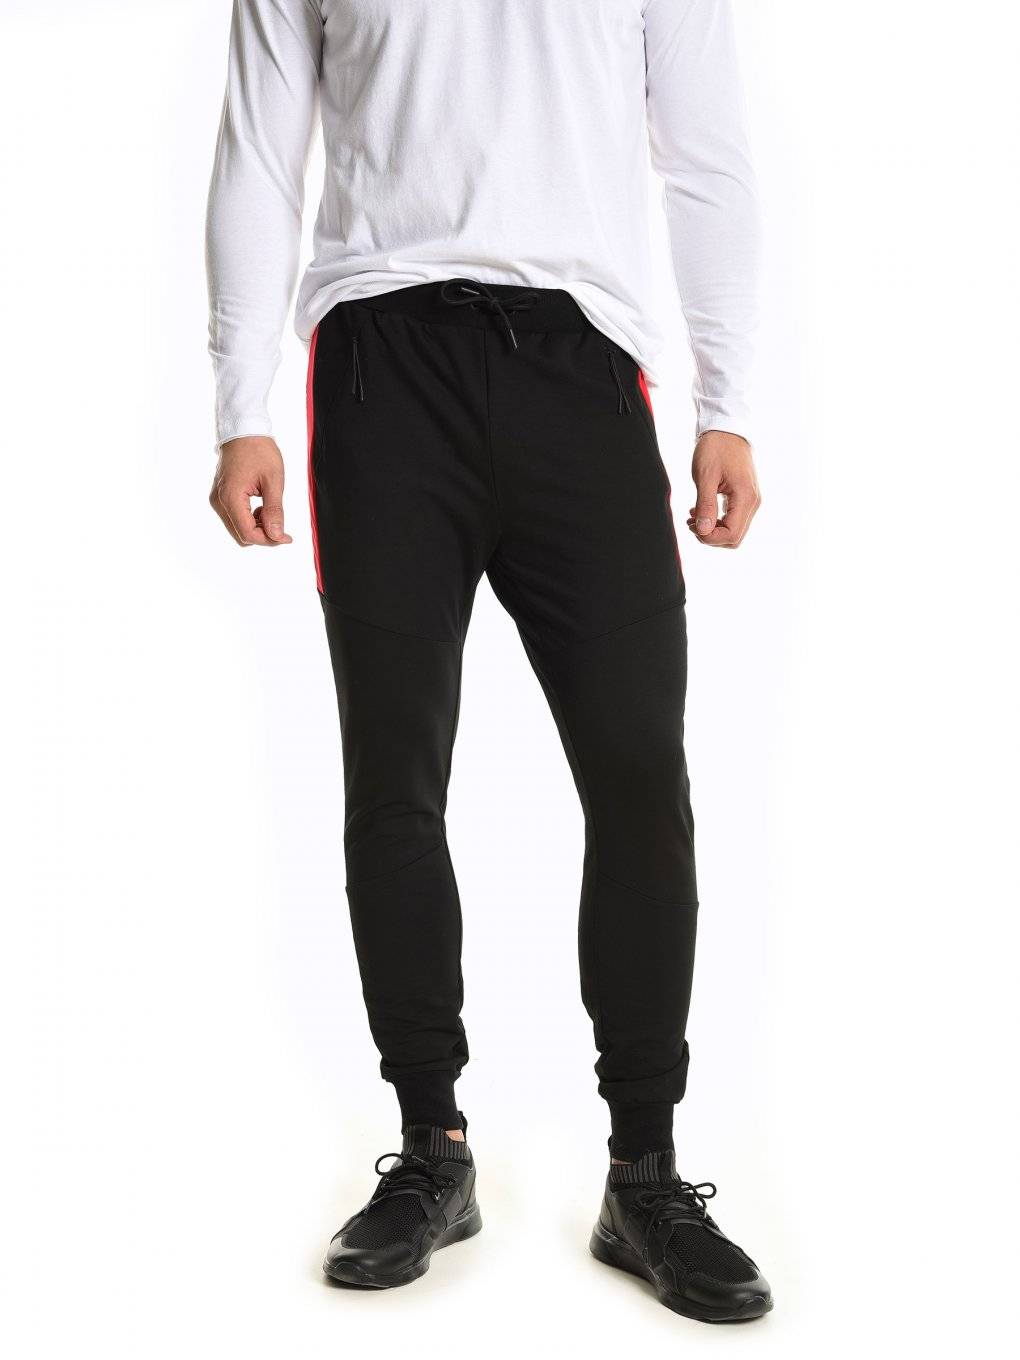 Sweatpants with contrast panels